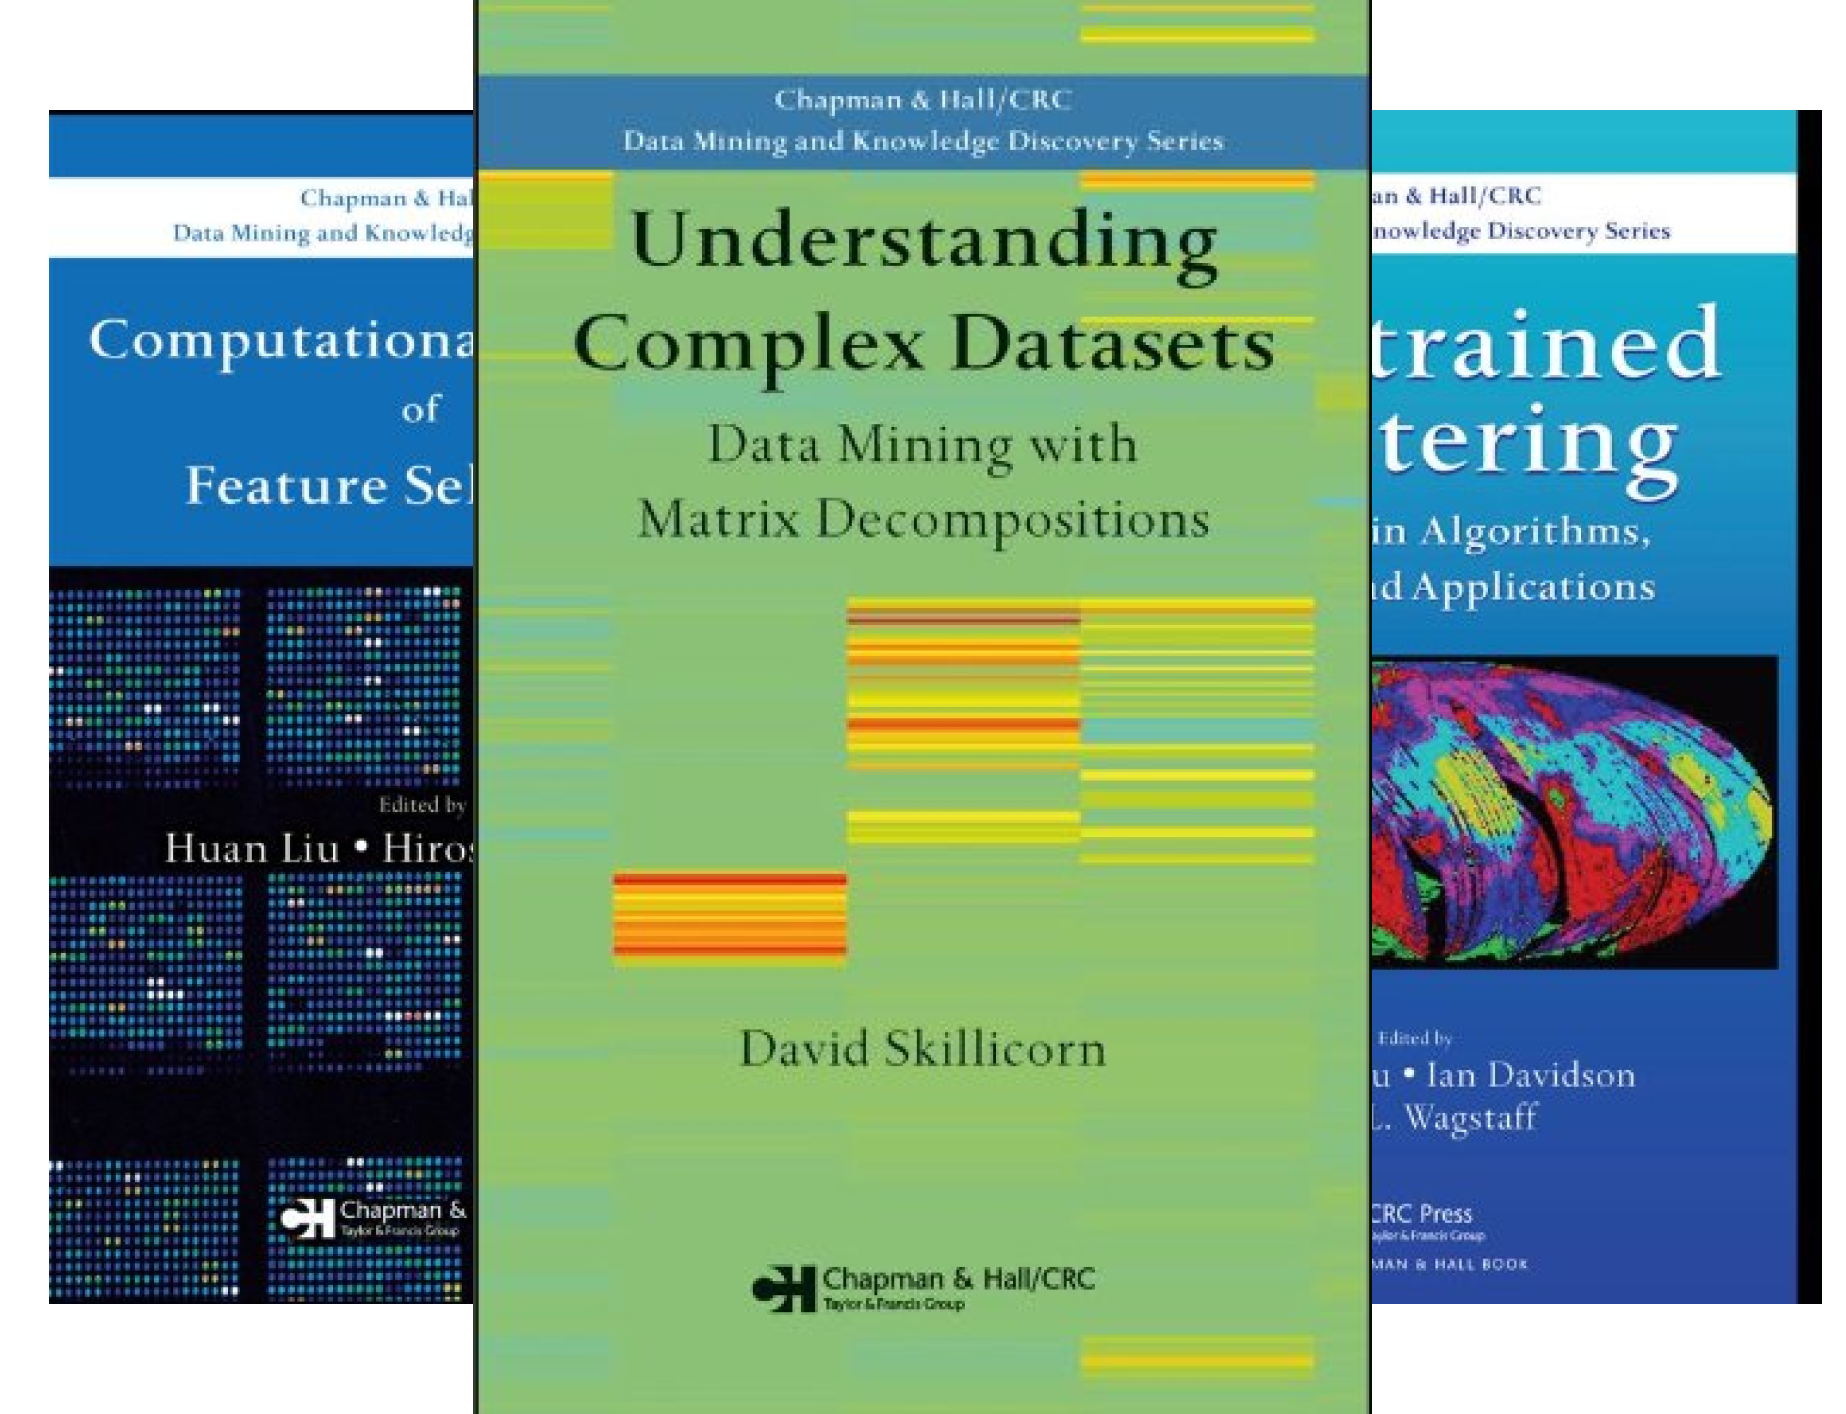 Chapman & Hall/CRC Data Mining and Knowledge Discovery (50 Book Series)